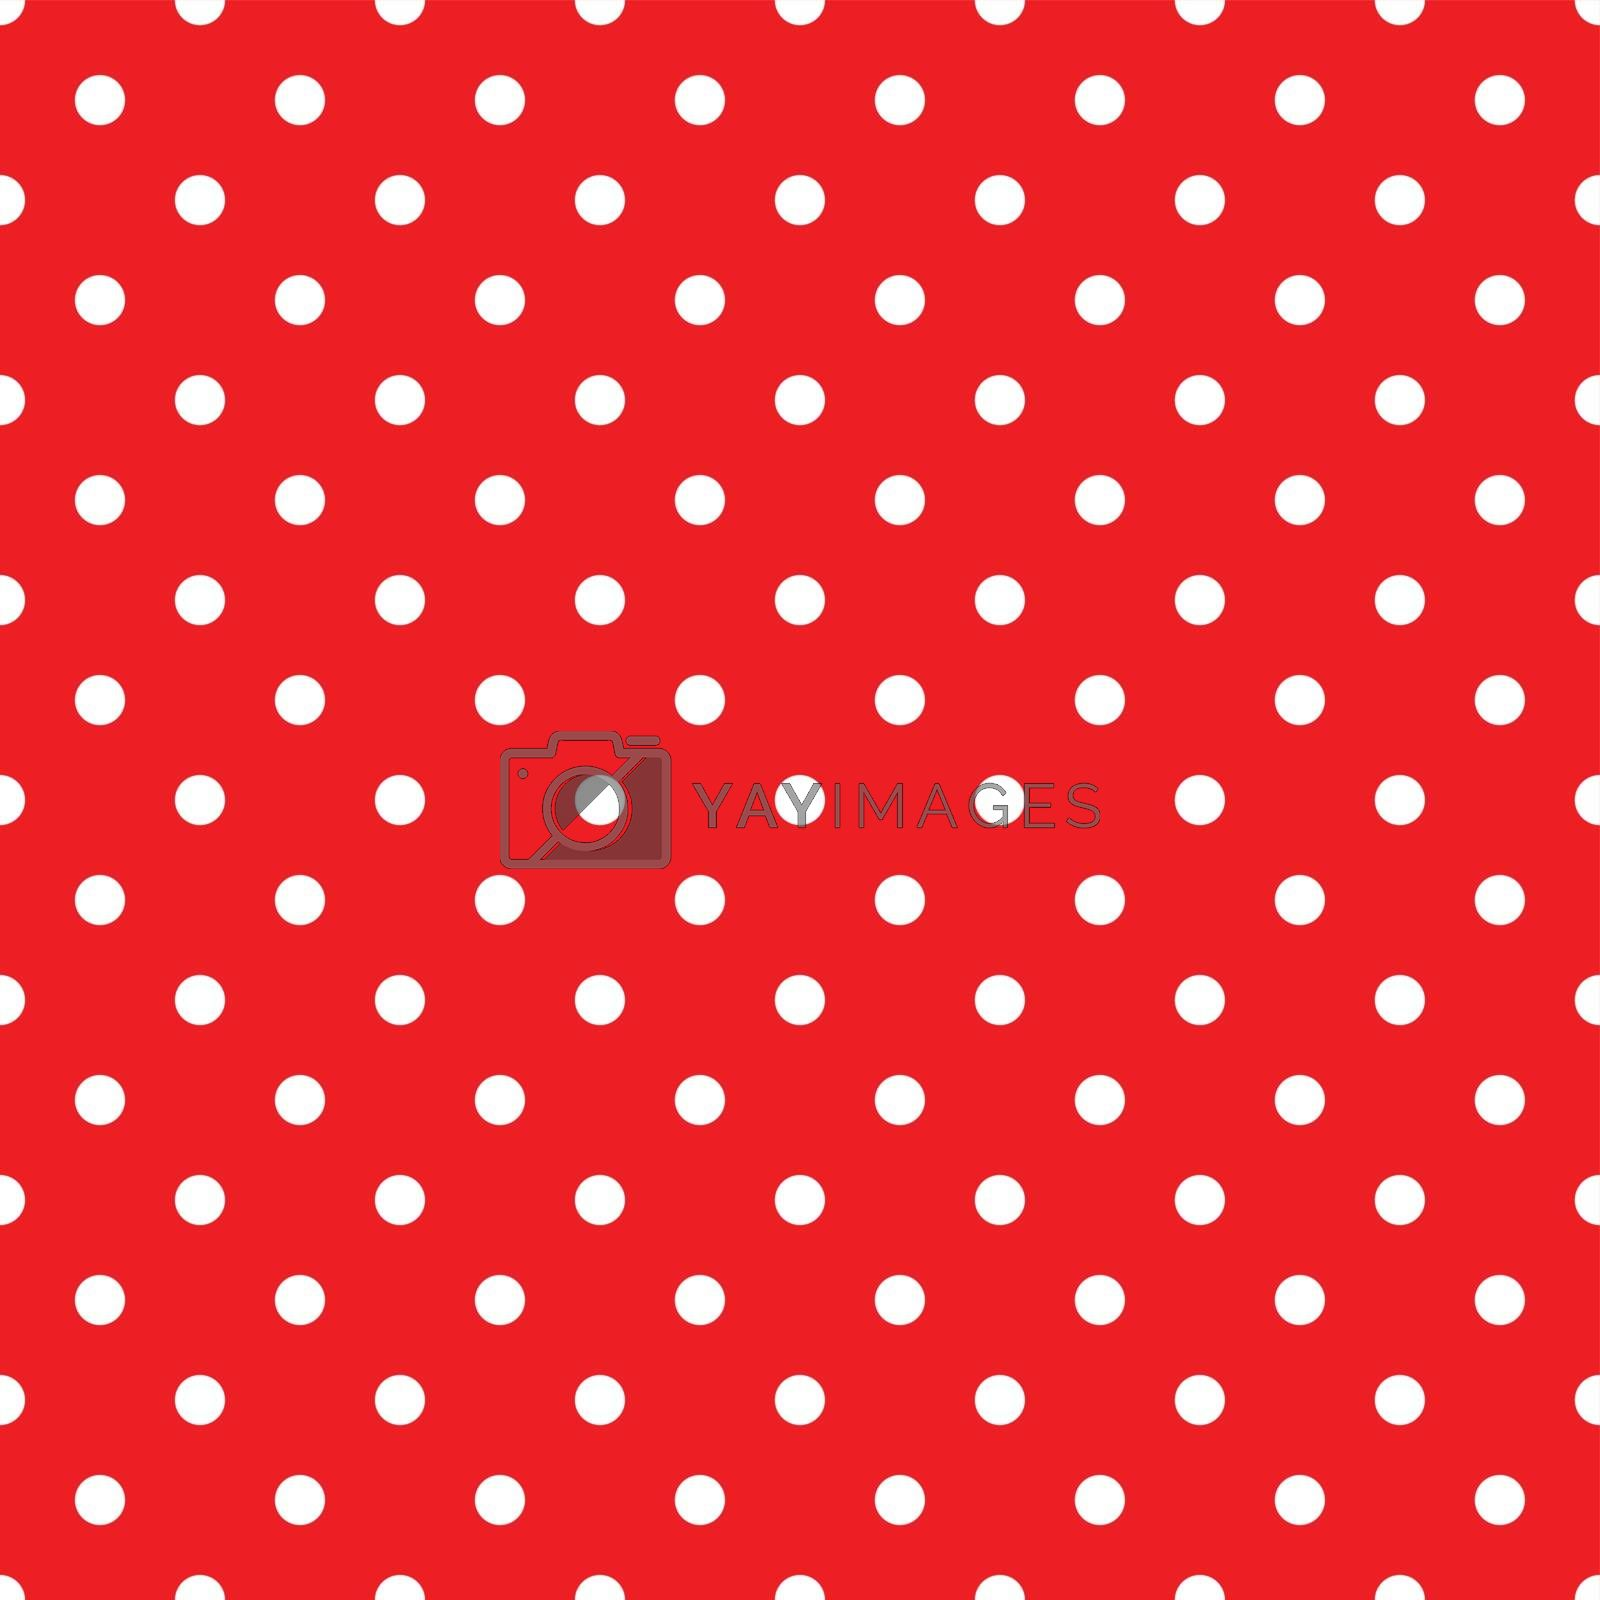 White Polka Dots on Red Background Seamless Pattern Tile